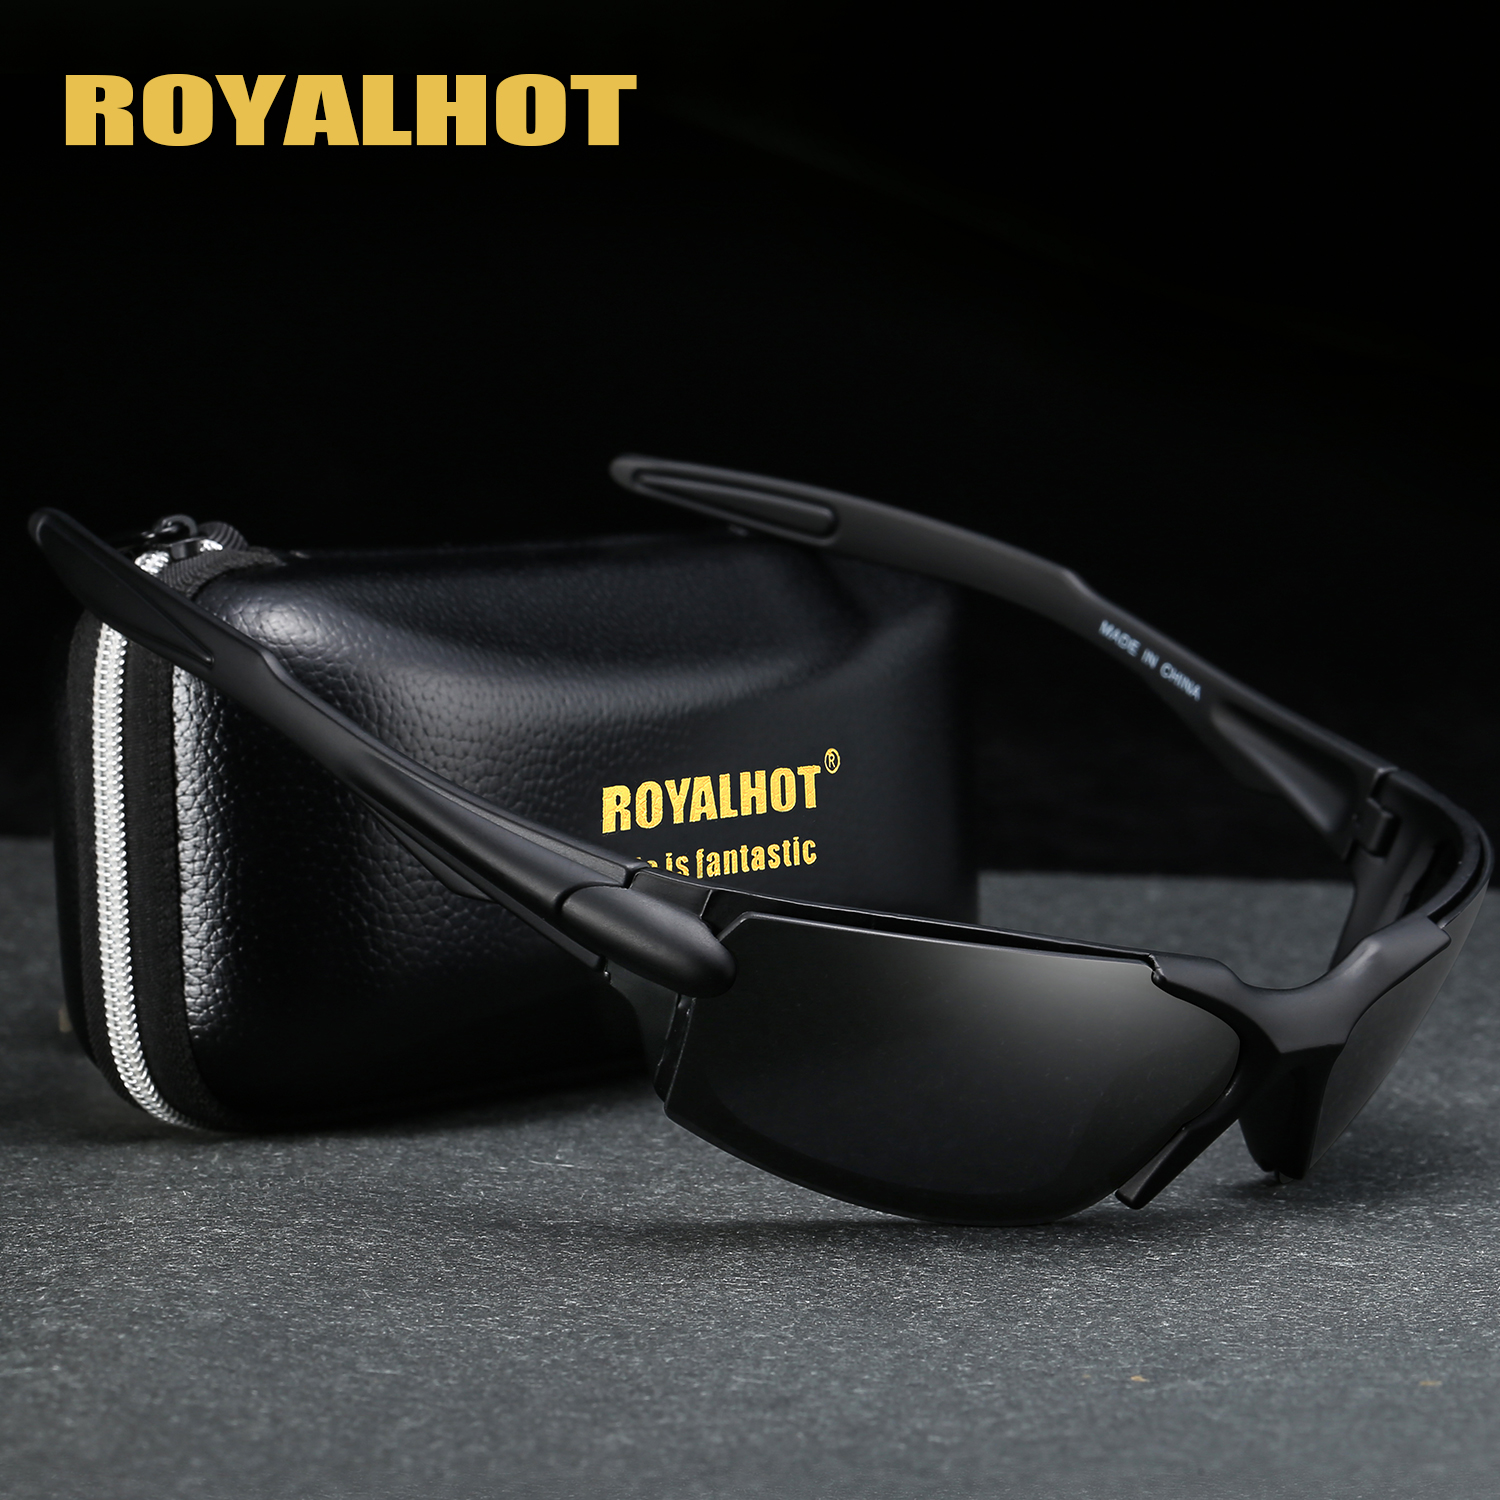 US $8.57 56% OFF|RoyalHot Men Women Polarized Elastic Sports Sunglasses Vintage Sun Glasses Retro Eyewear Shades Oculos Male 900187|Men